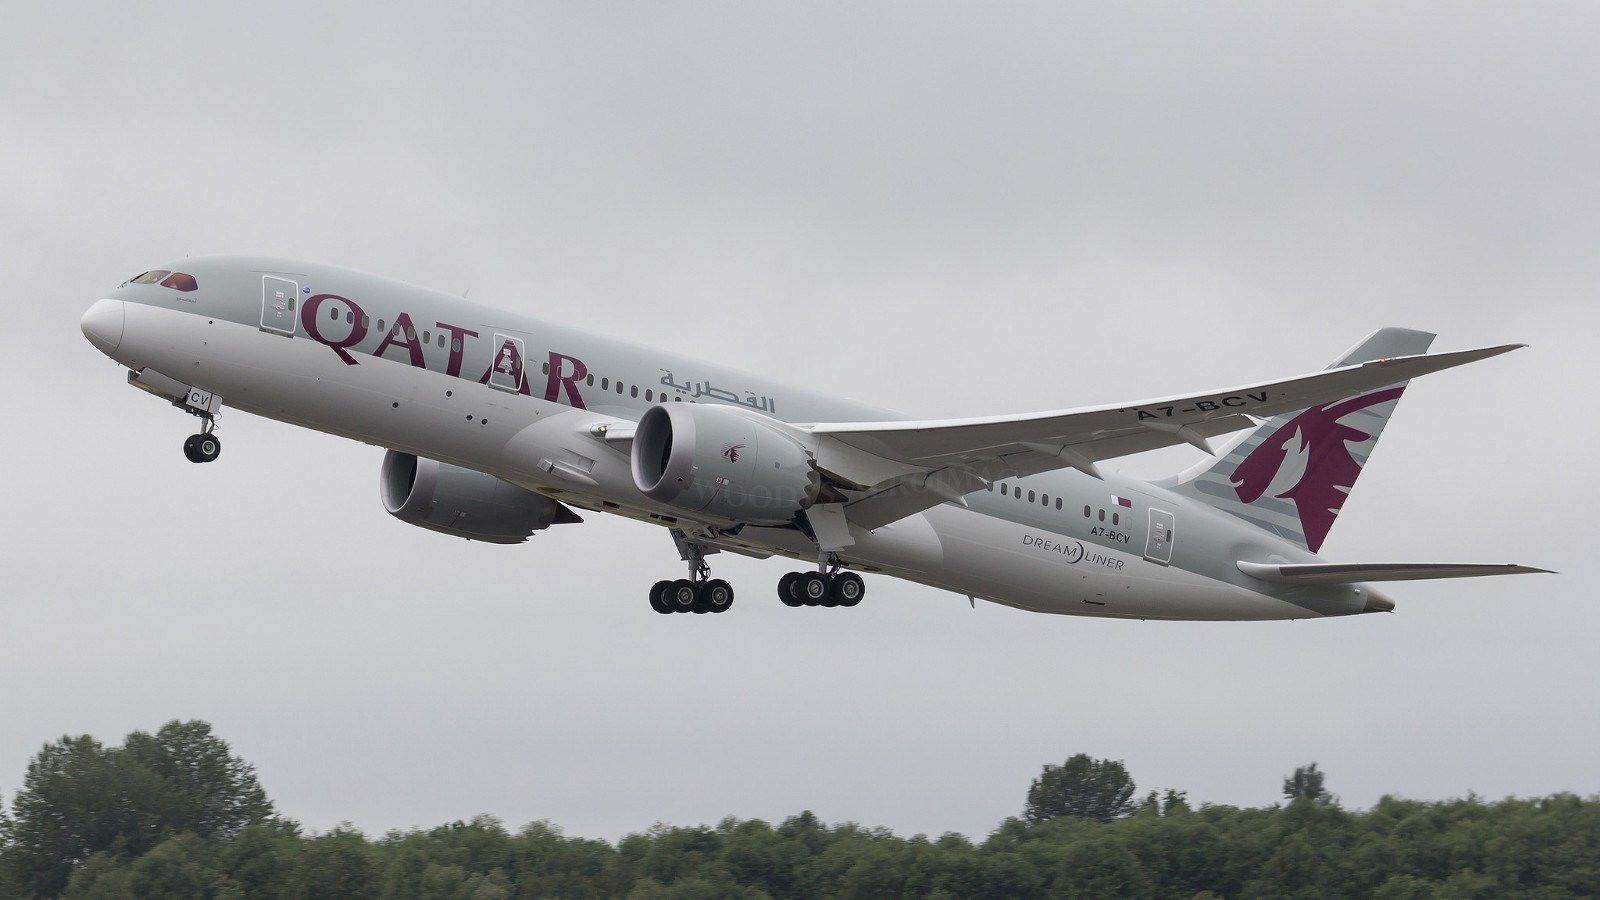 After a profitable year, Qatar Airways is facing murky skies